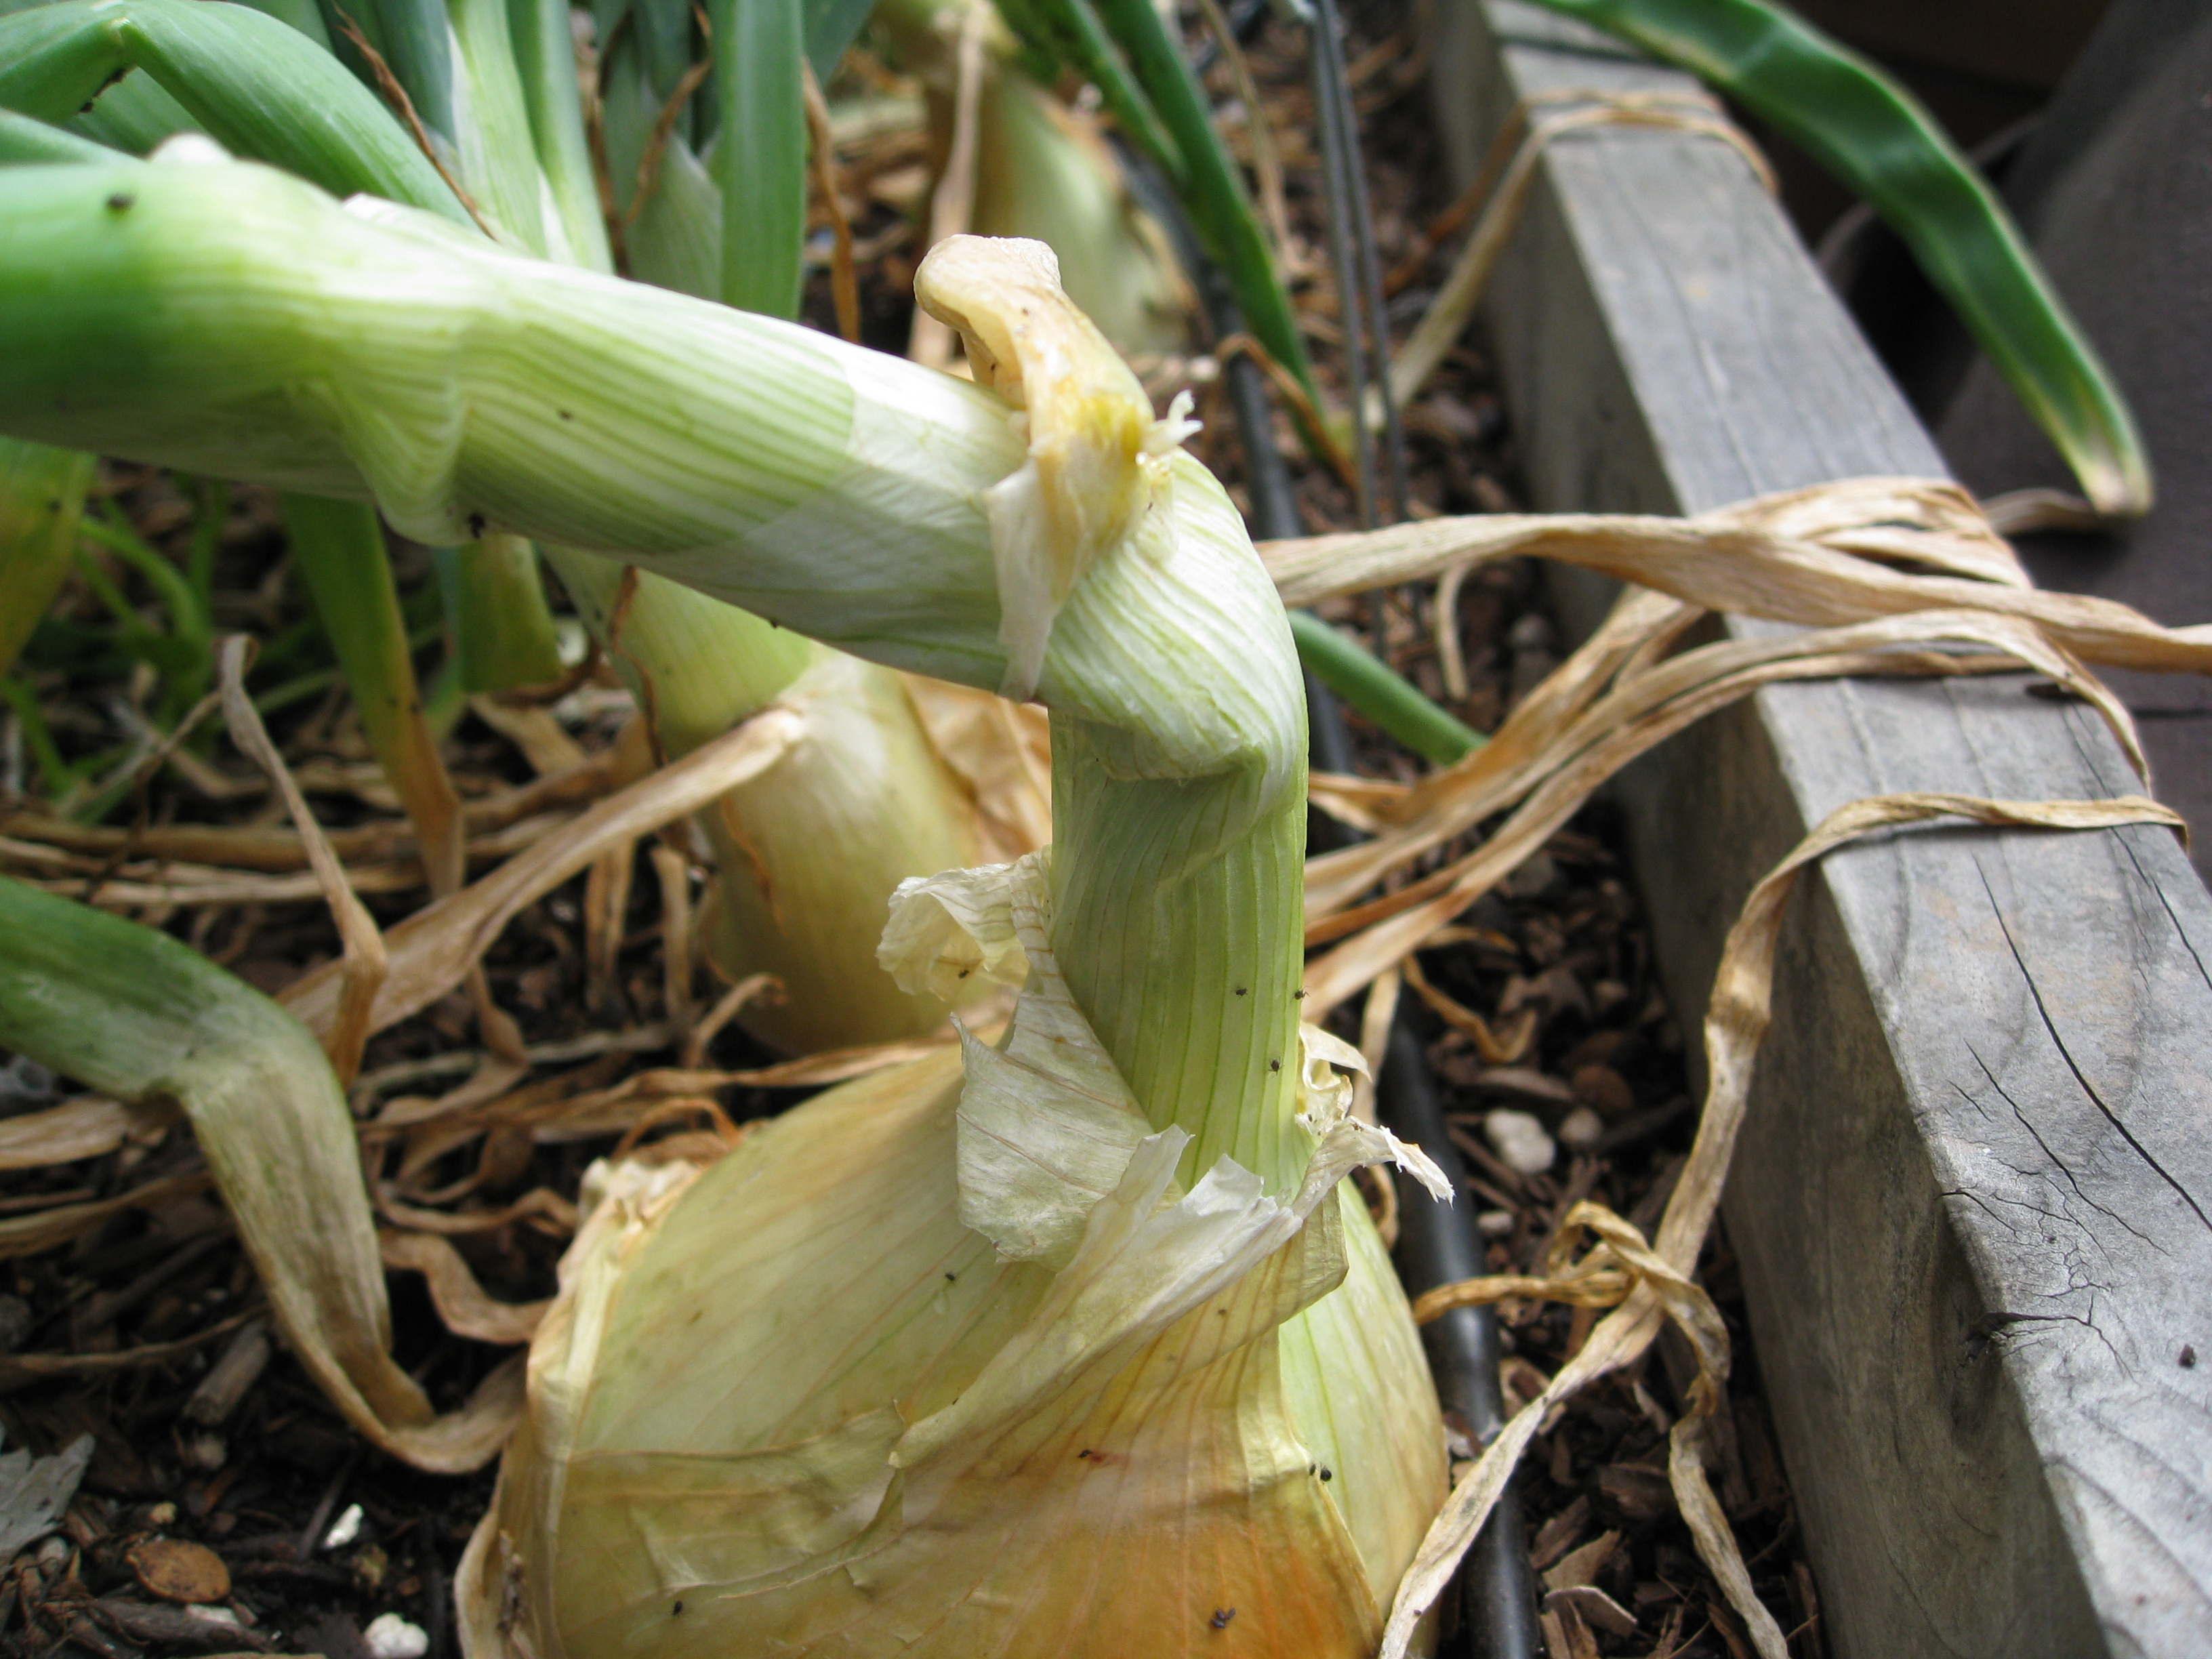 A yellow onion ready for harvest